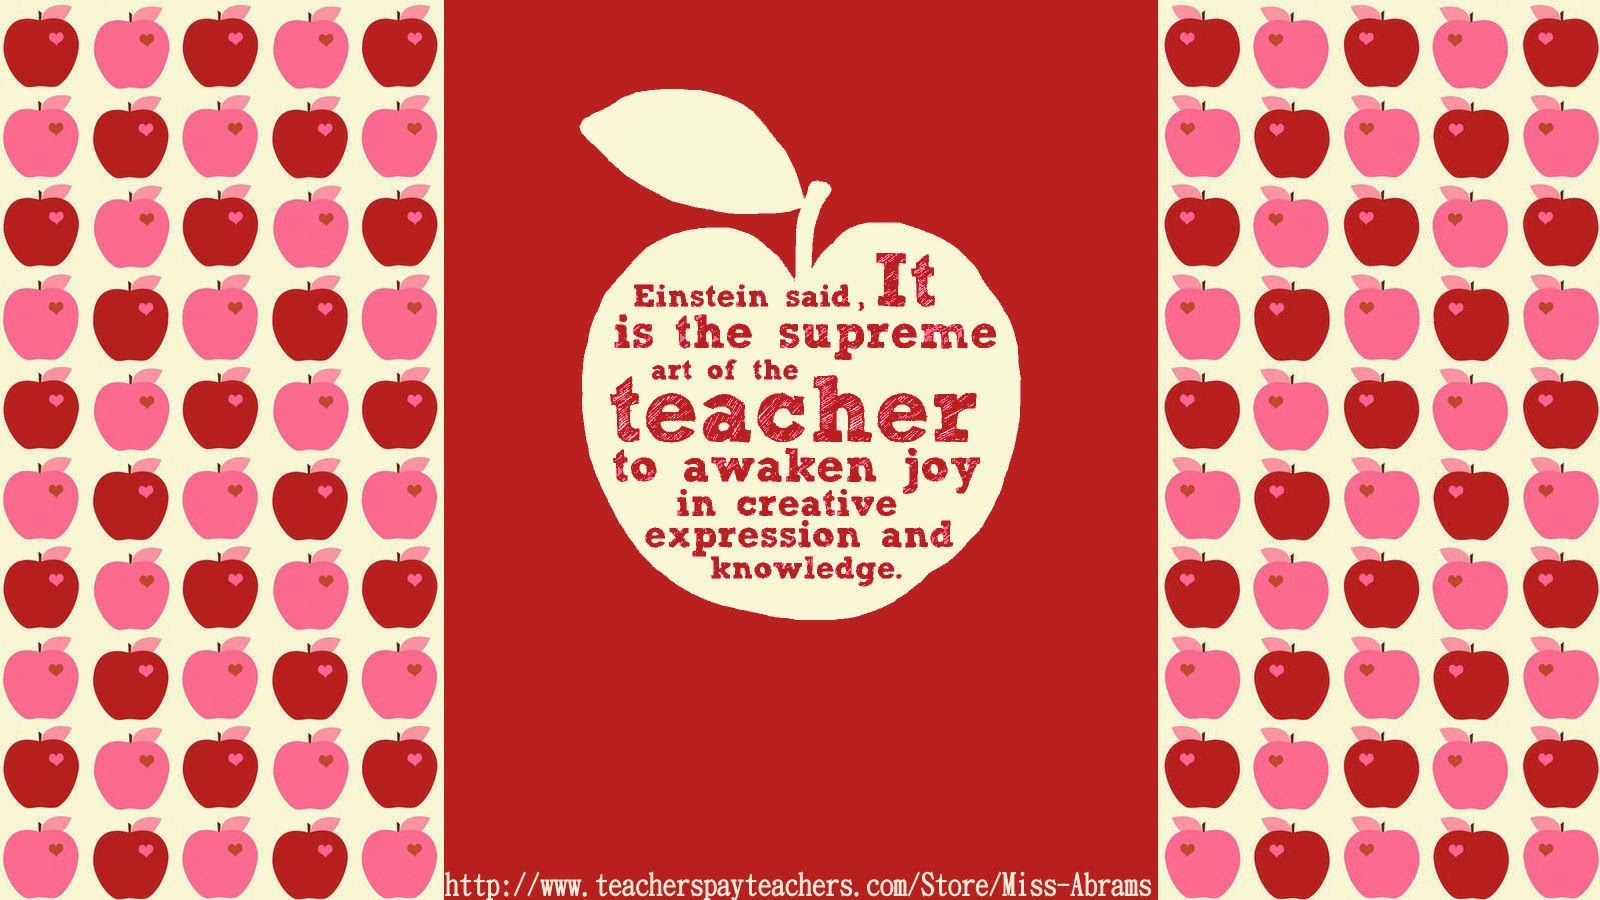 1600x900 Free Teacher-themed wallpapers to decorate your computer ...